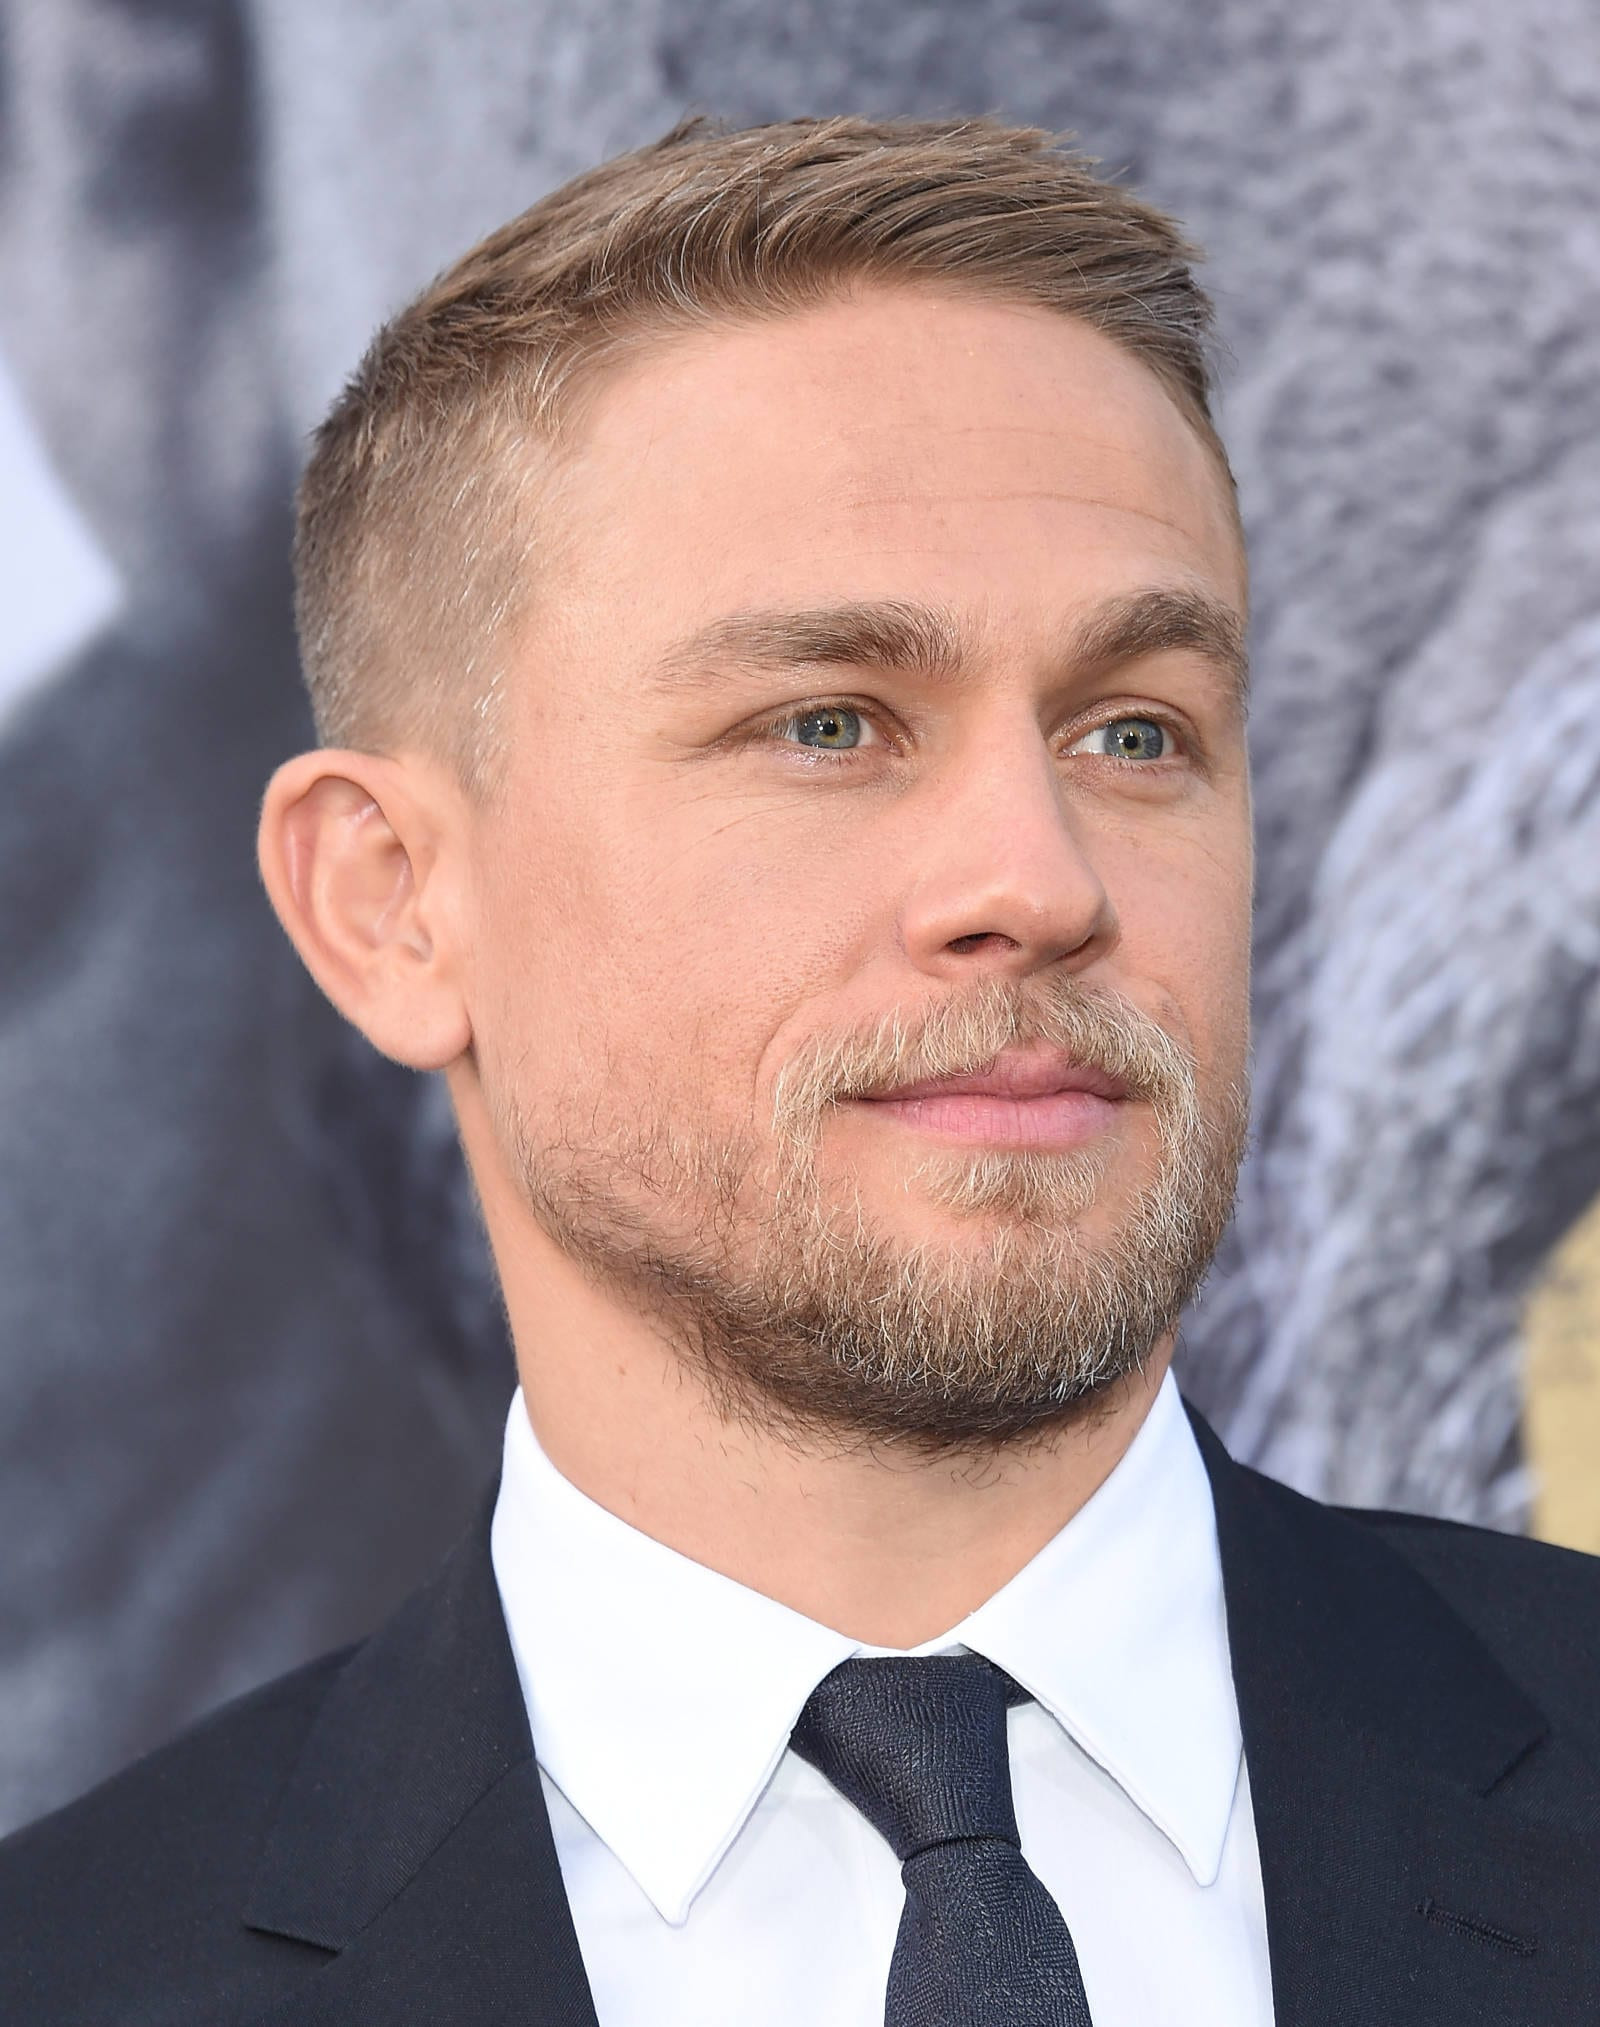 Best ideas about Mens Short Blonde Hairstyles . Save or Pin Best 50 Blonde Hairstyles for Men to try in 2019 Now.